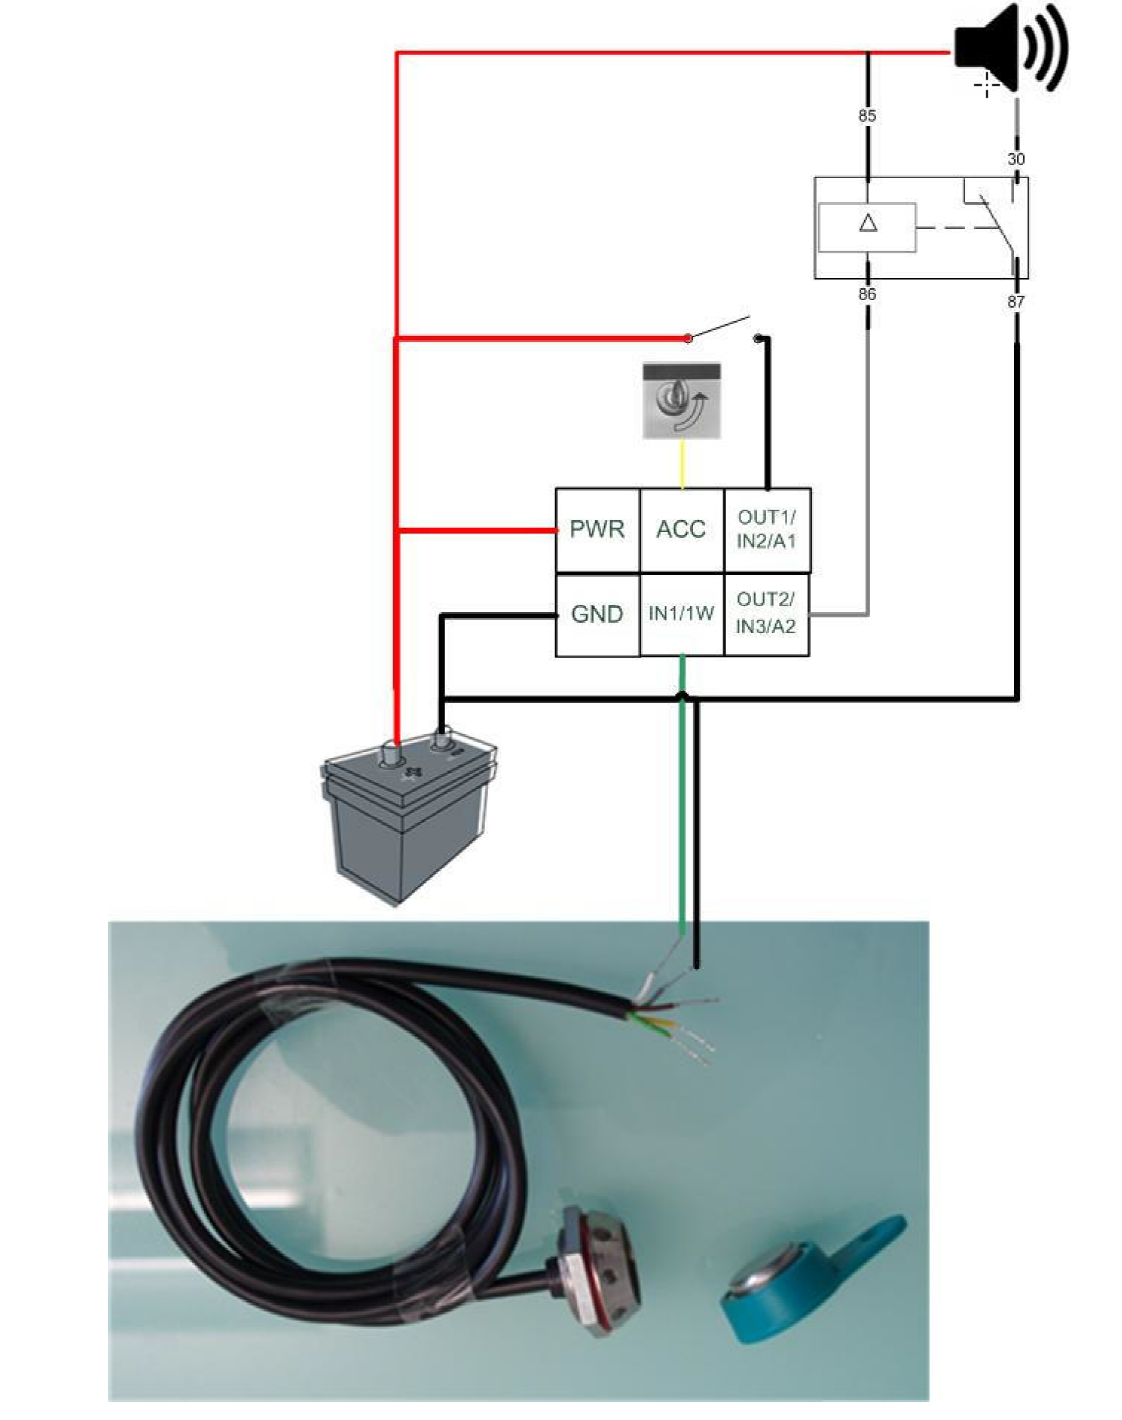 image2015 5 12 14%3A5%3A12?version=1&modificationDate=1431432359069&api=v2 gps dynamic einbauanleitung ak1 Basic Electrical Wiring Diagrams at crackthecode.co